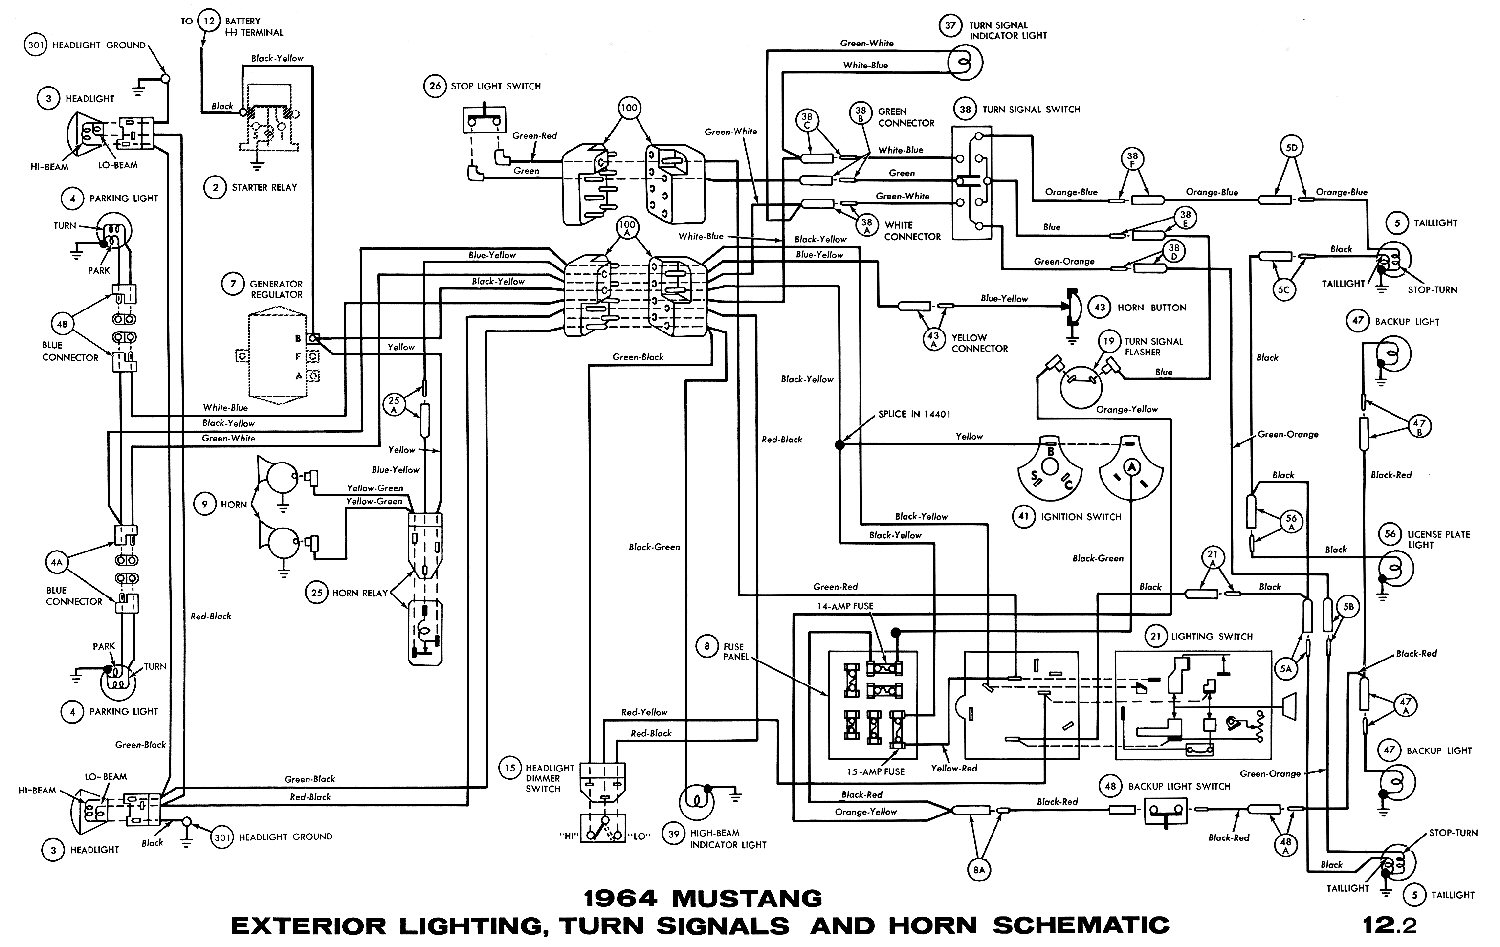 1964i 1965 ford mustang wiring diagram 1999 mustang gt wiring diagram 1965 ford mustang wiring diagrams at gsmx.co